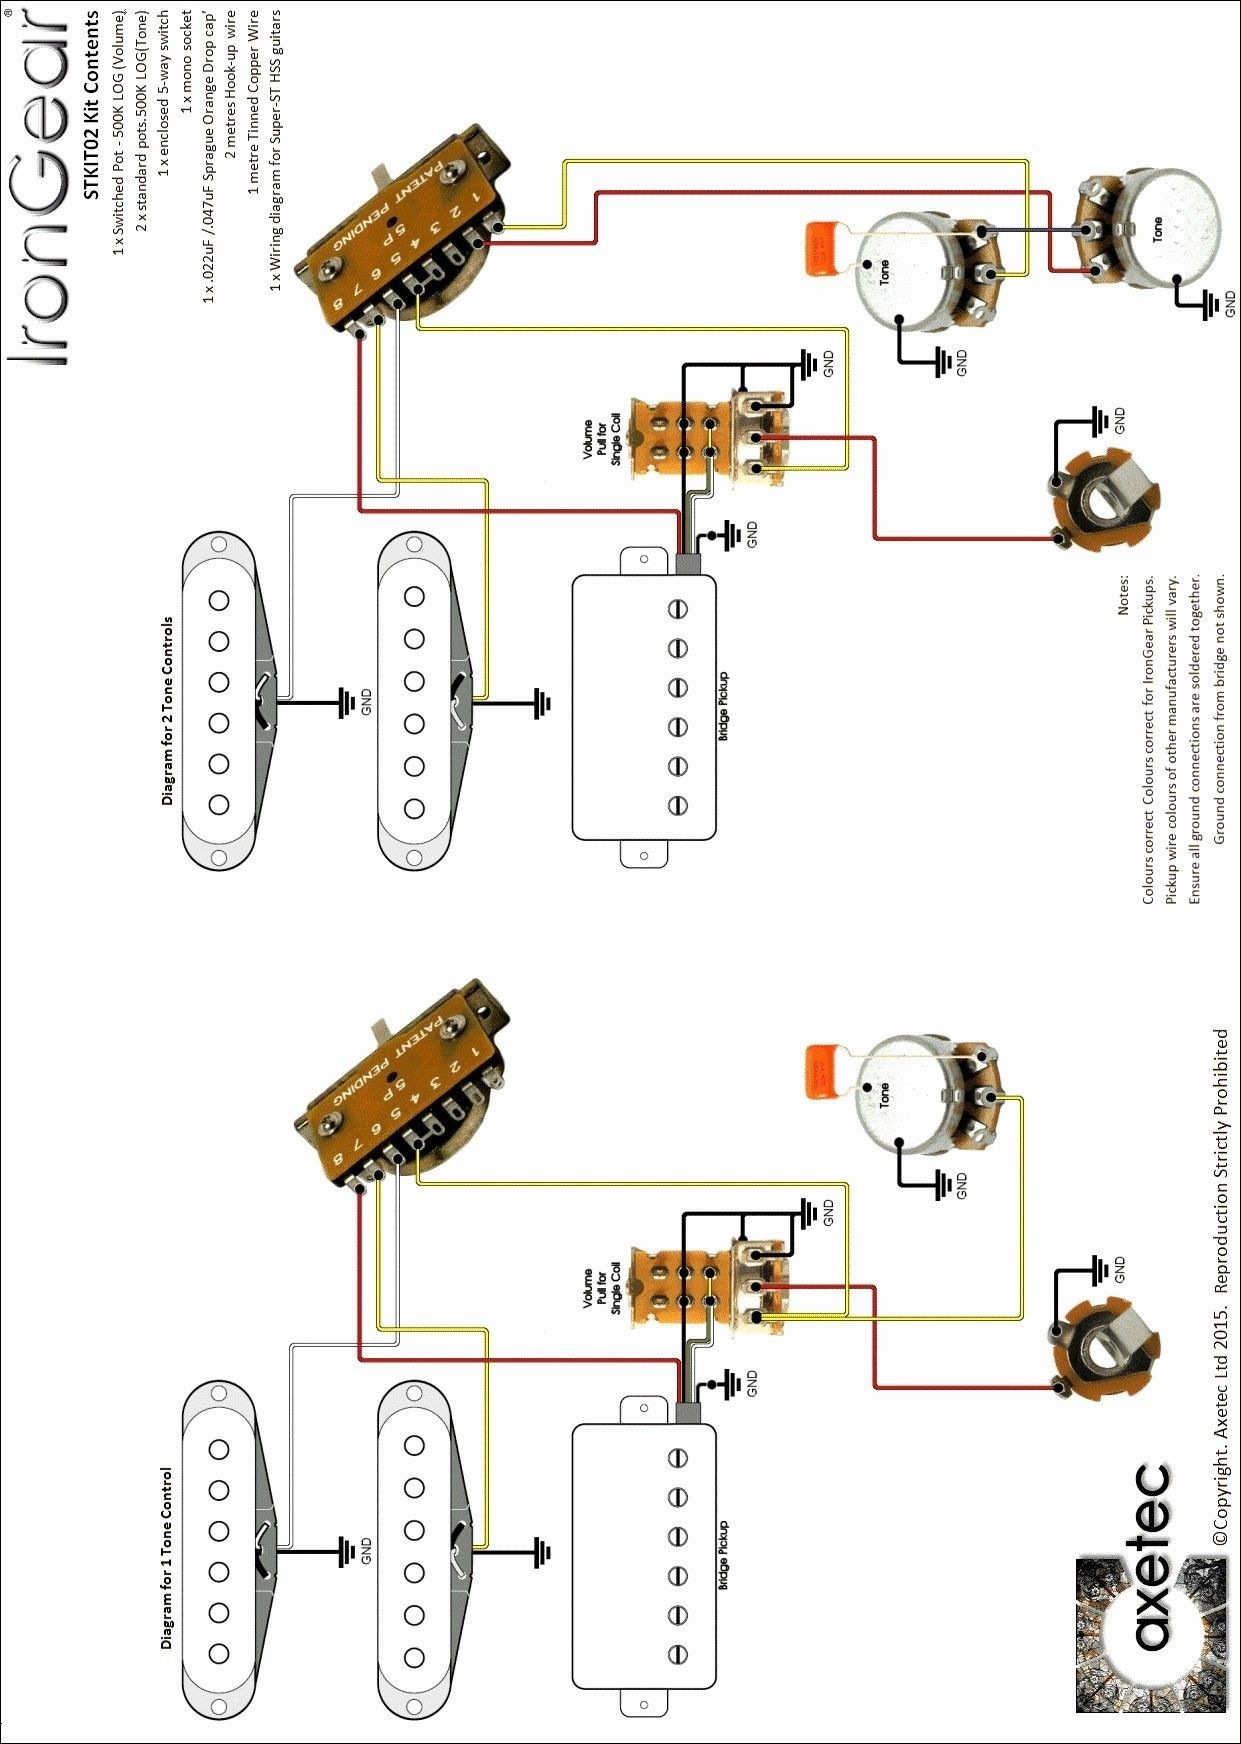 hight resolution of fender scn pickup wiring diagram inside diagrams wellread me